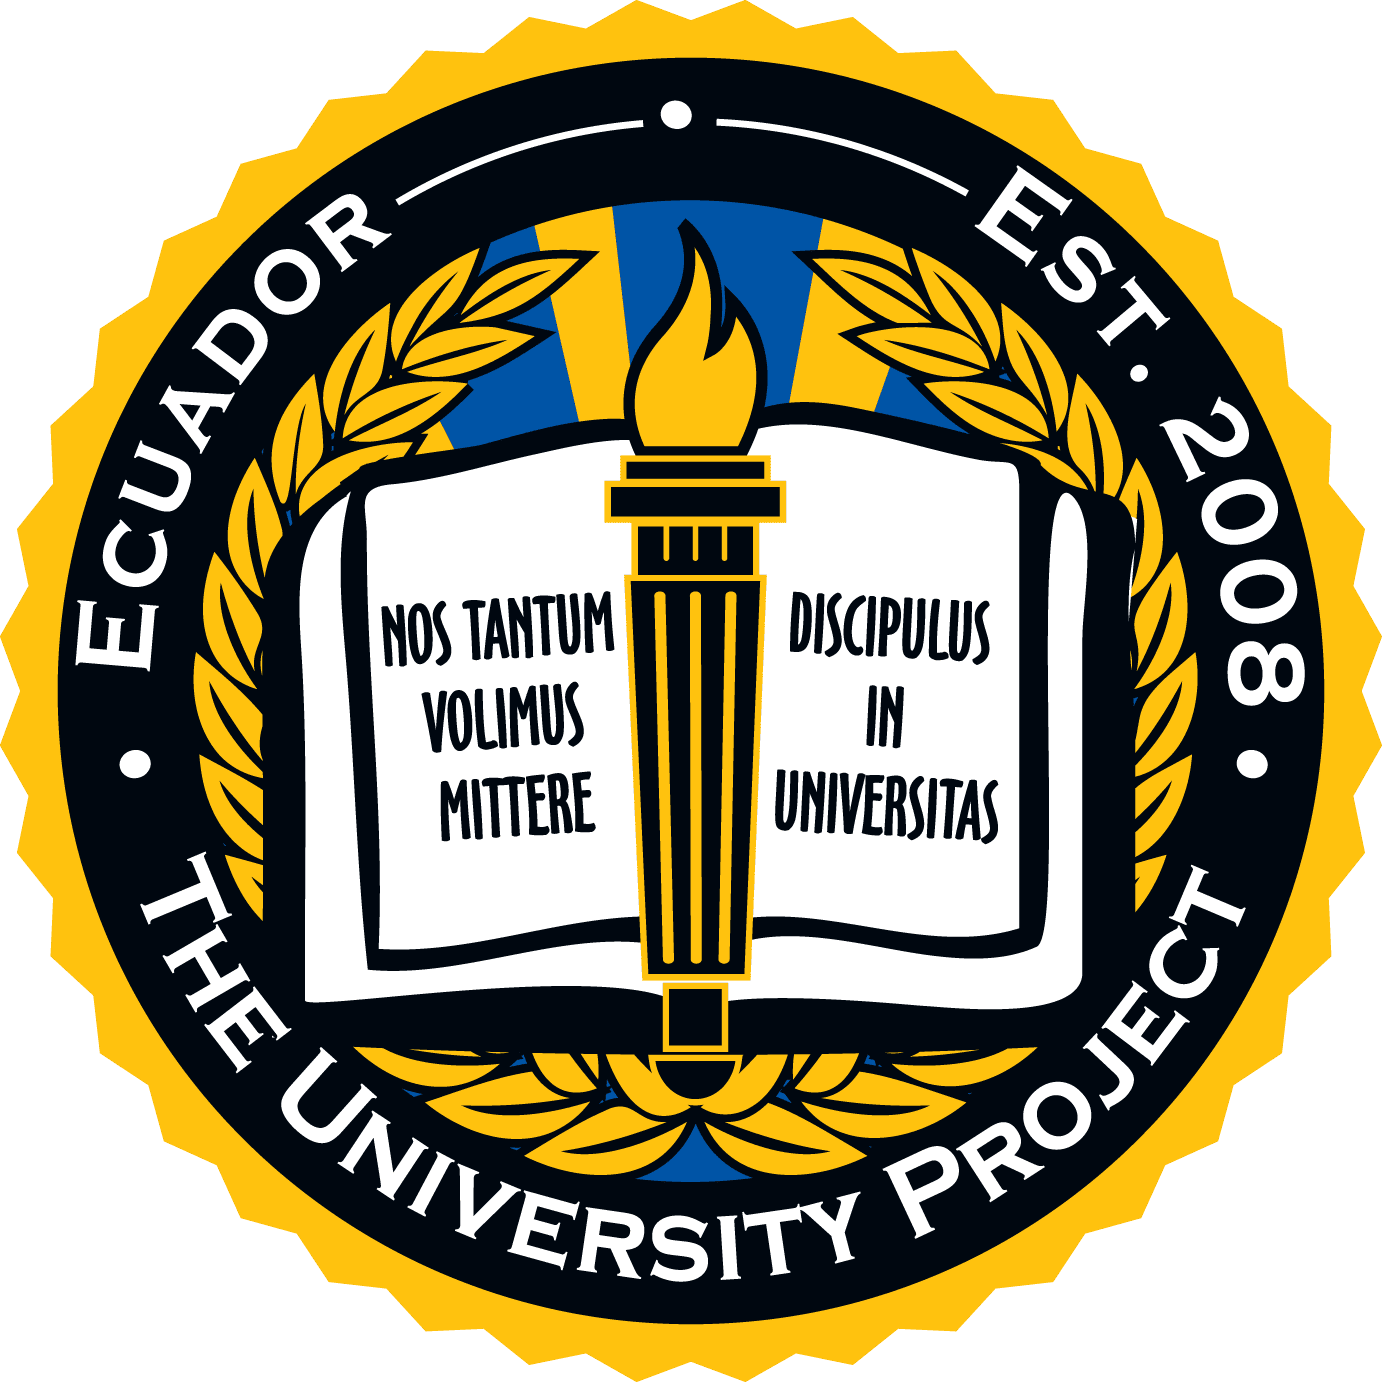 University Project seal